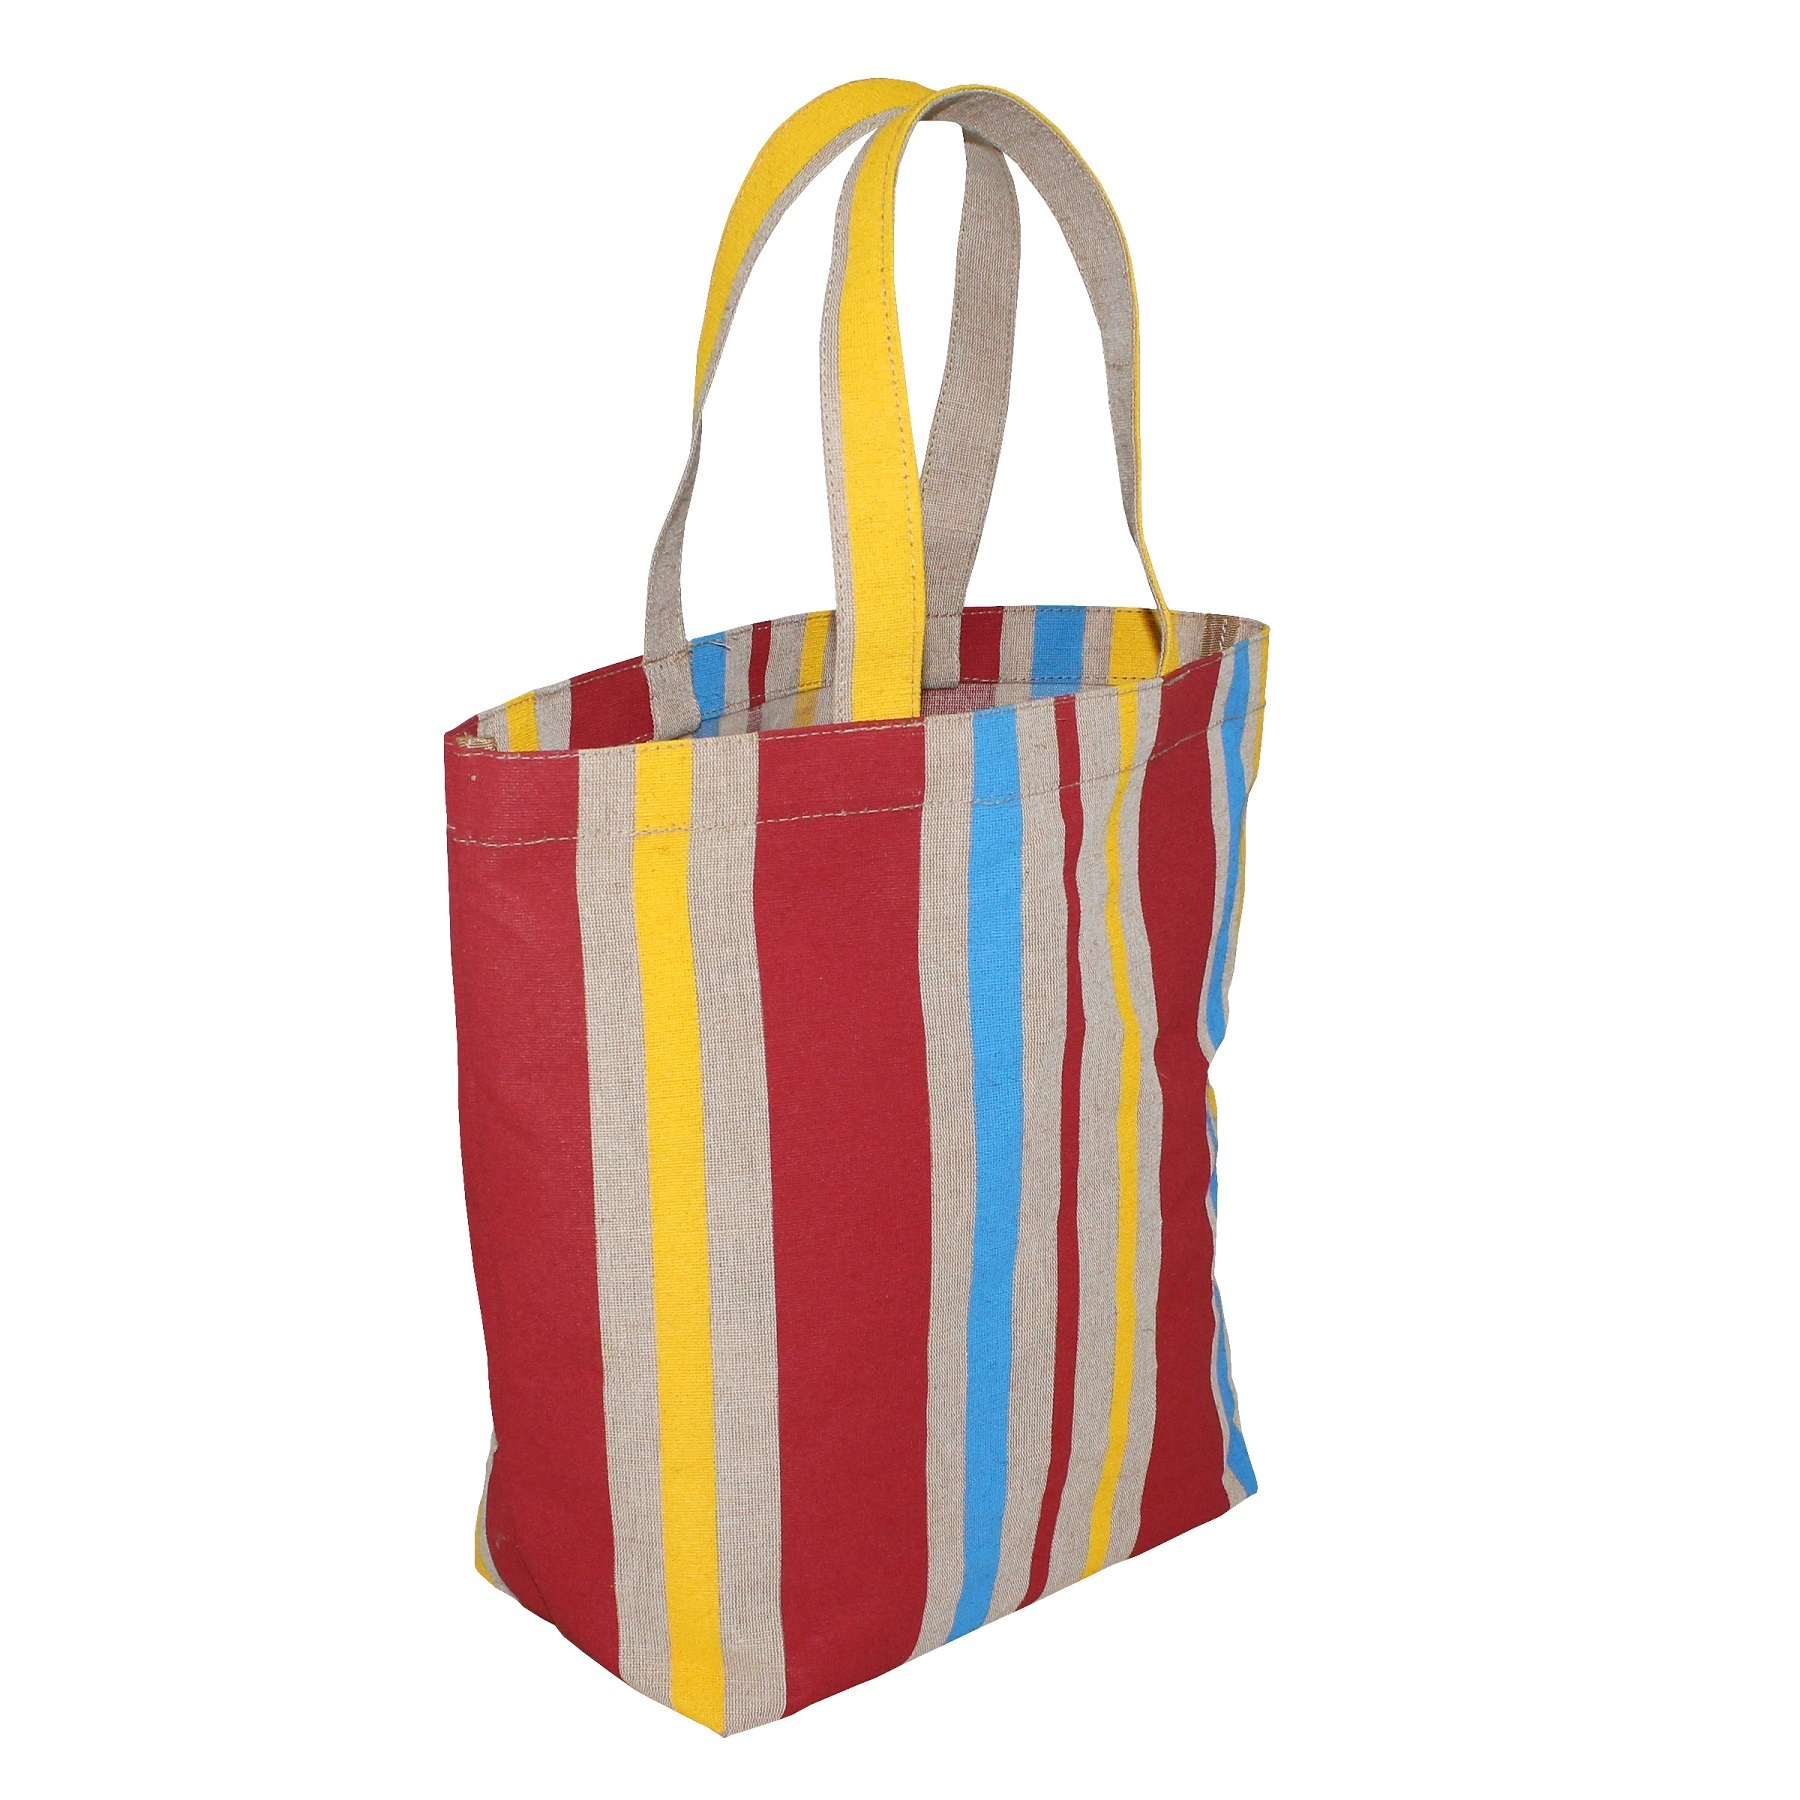 Pp Laminated Juco Fabric Tote Bag With Juco Handle